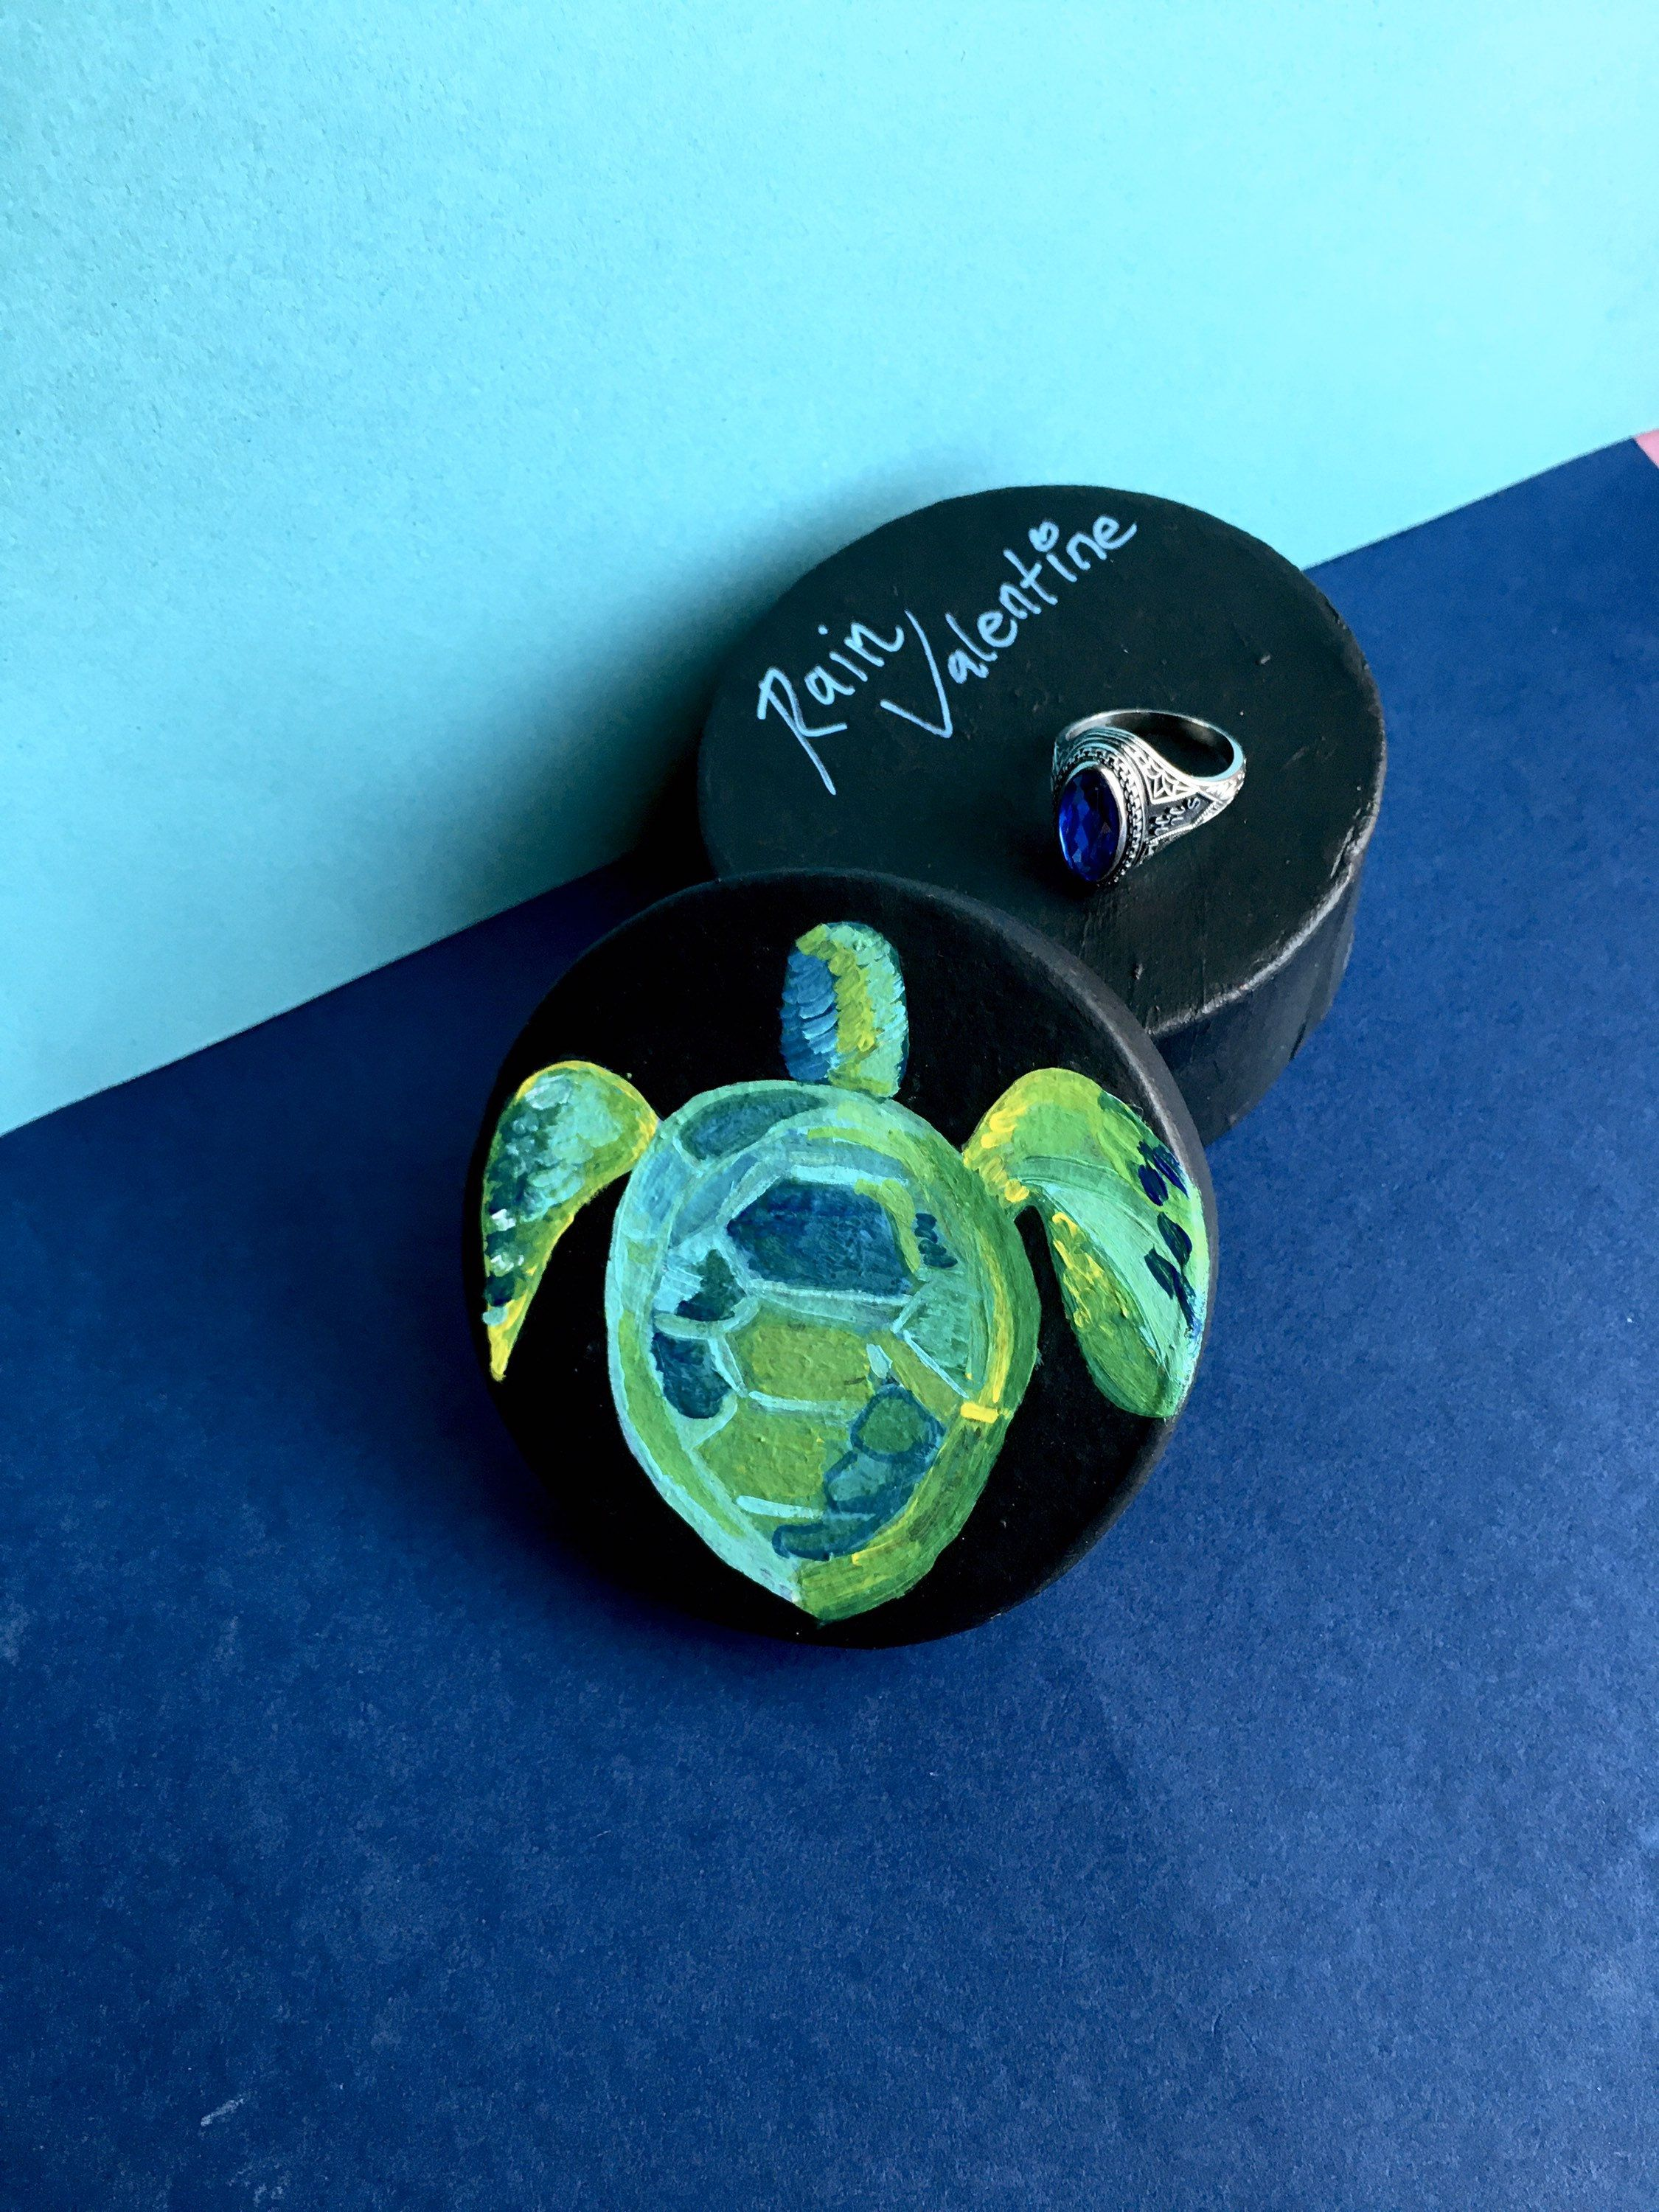 Sea Life Halloween 2020 Turtle Art Engagement ring boxTurtle Ring box Salty | Etsy in 2020